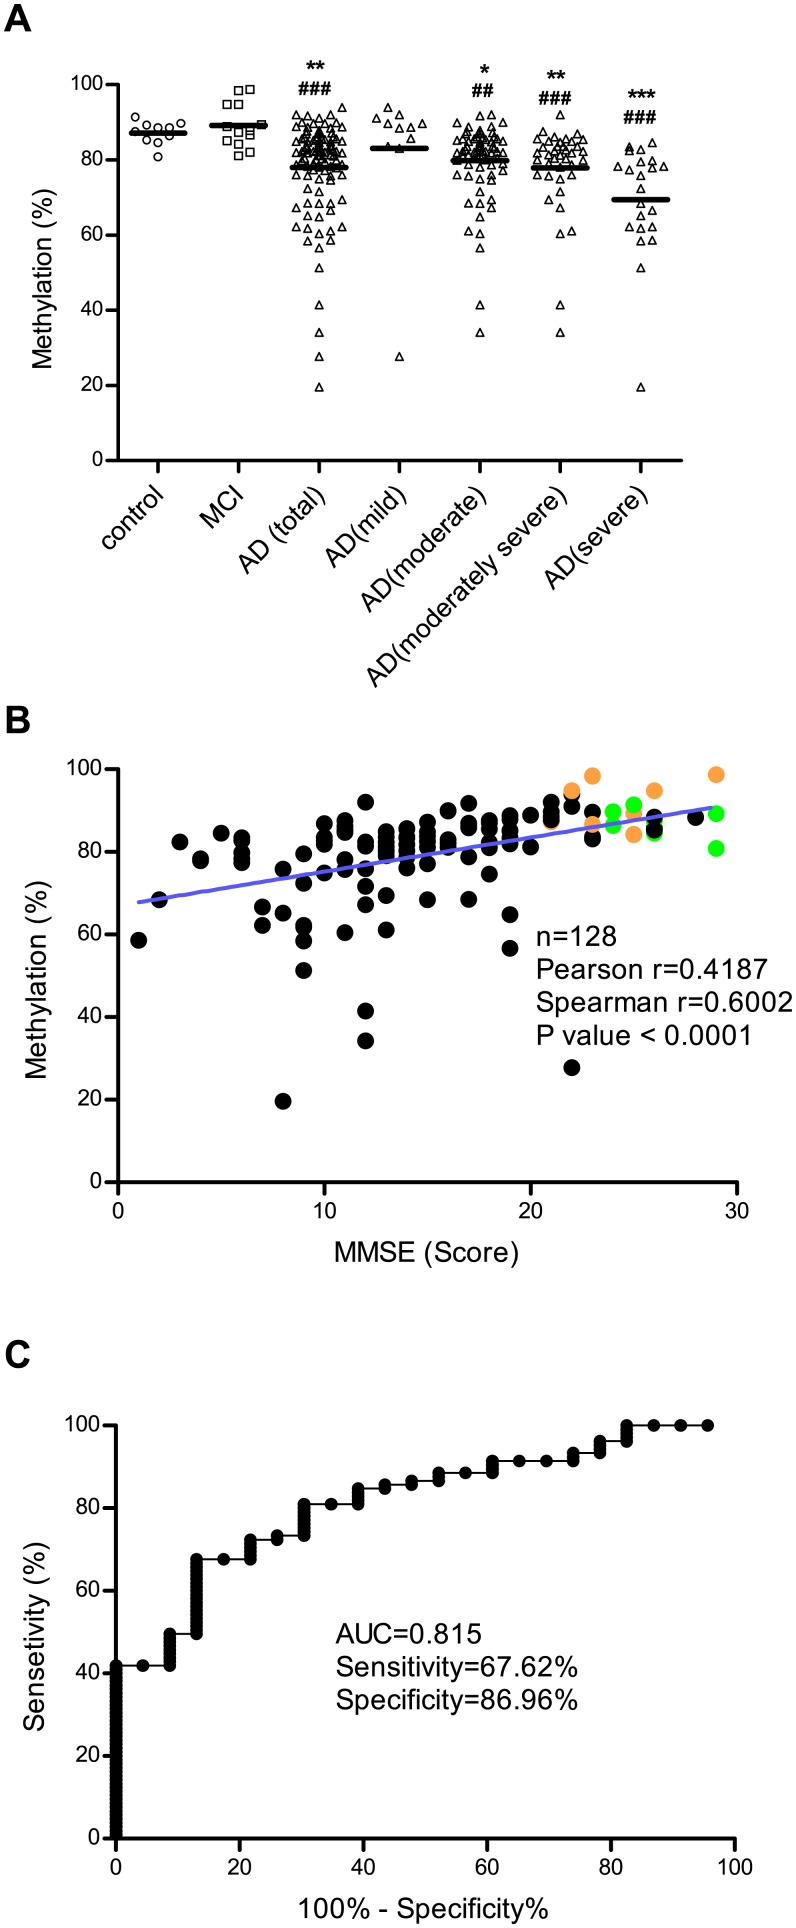 Evaluation of DNA methylation status at the –374 CpG site on the HMOX1 gene as a biomarker for AD. DNA methylation at the –374 CpG site in blood samples from AD patients, MCI patients and control individuals was analyzed using qMSP. (A) Data are expressed as scattered plots with lines at mean value. Statistical analyses were performed using Kruskal-Wallis one-way analysis of variance and Dunn's multiple comparison post-tests for comparing the significance between AD patients and control individuals (*) or MCI patients ( # ) (*, # p